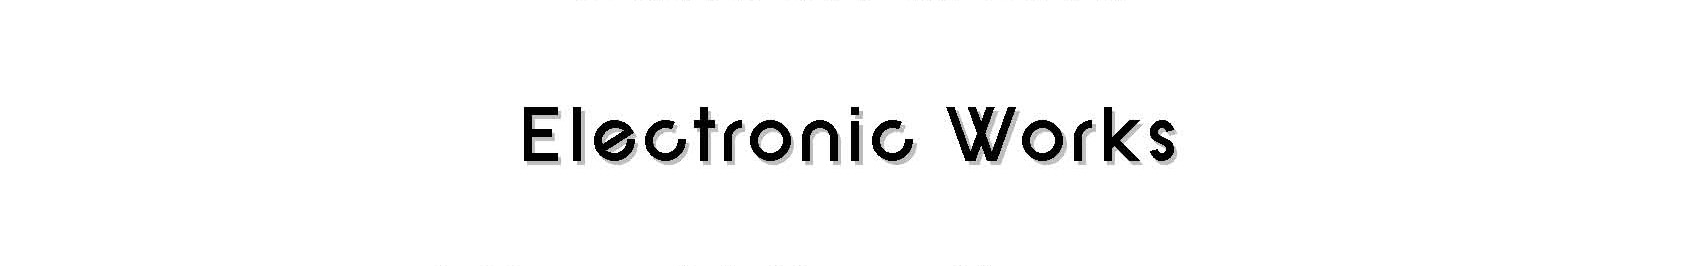 electronic works